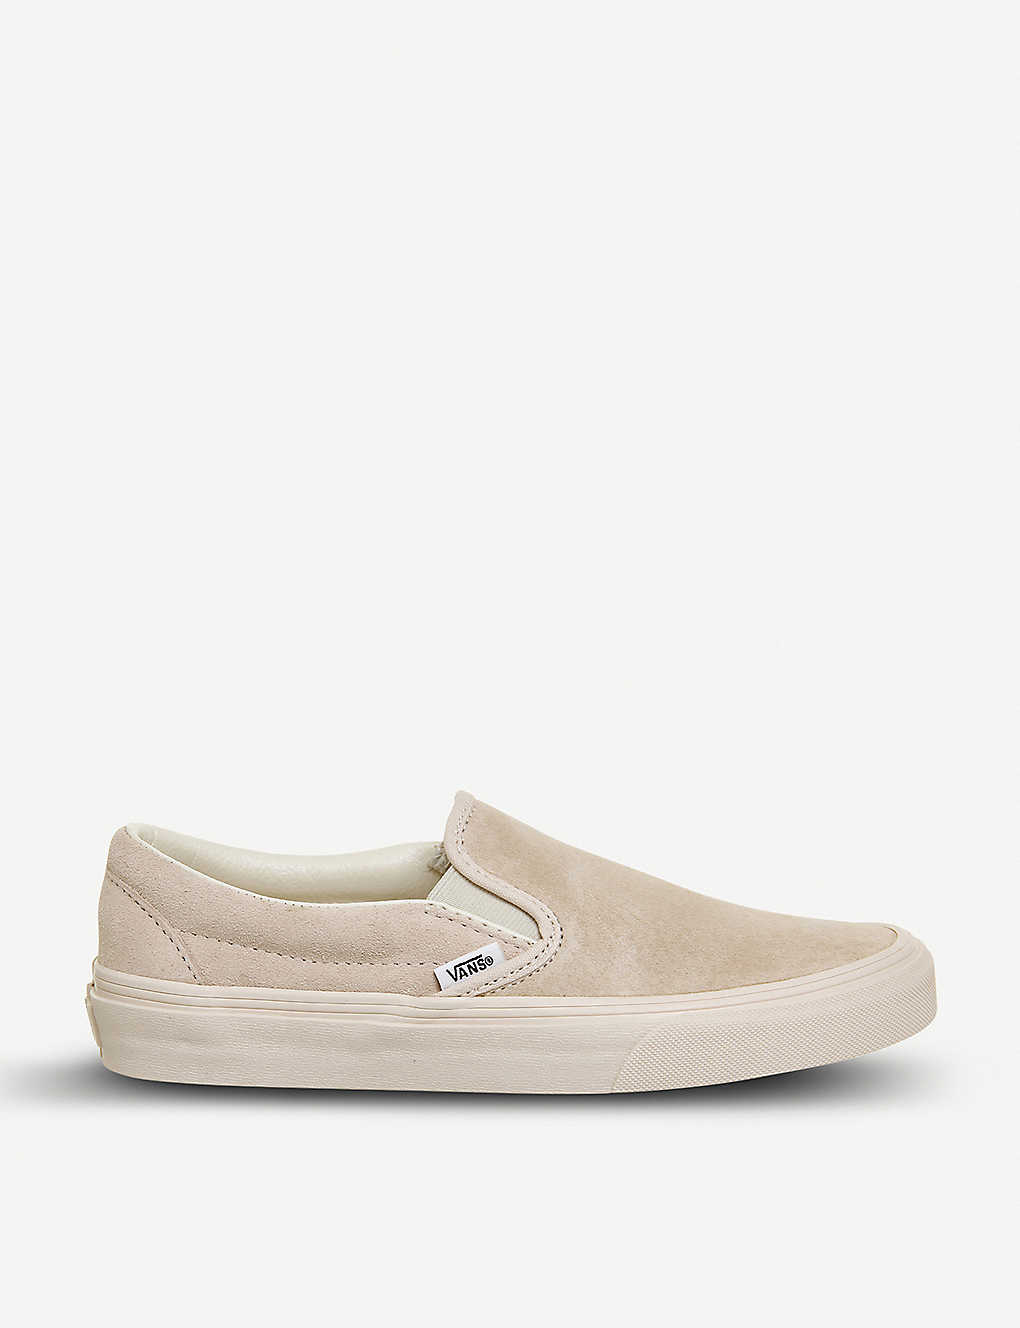 f4378c1ce90 VANS - Classic slip-on suede skate shoes